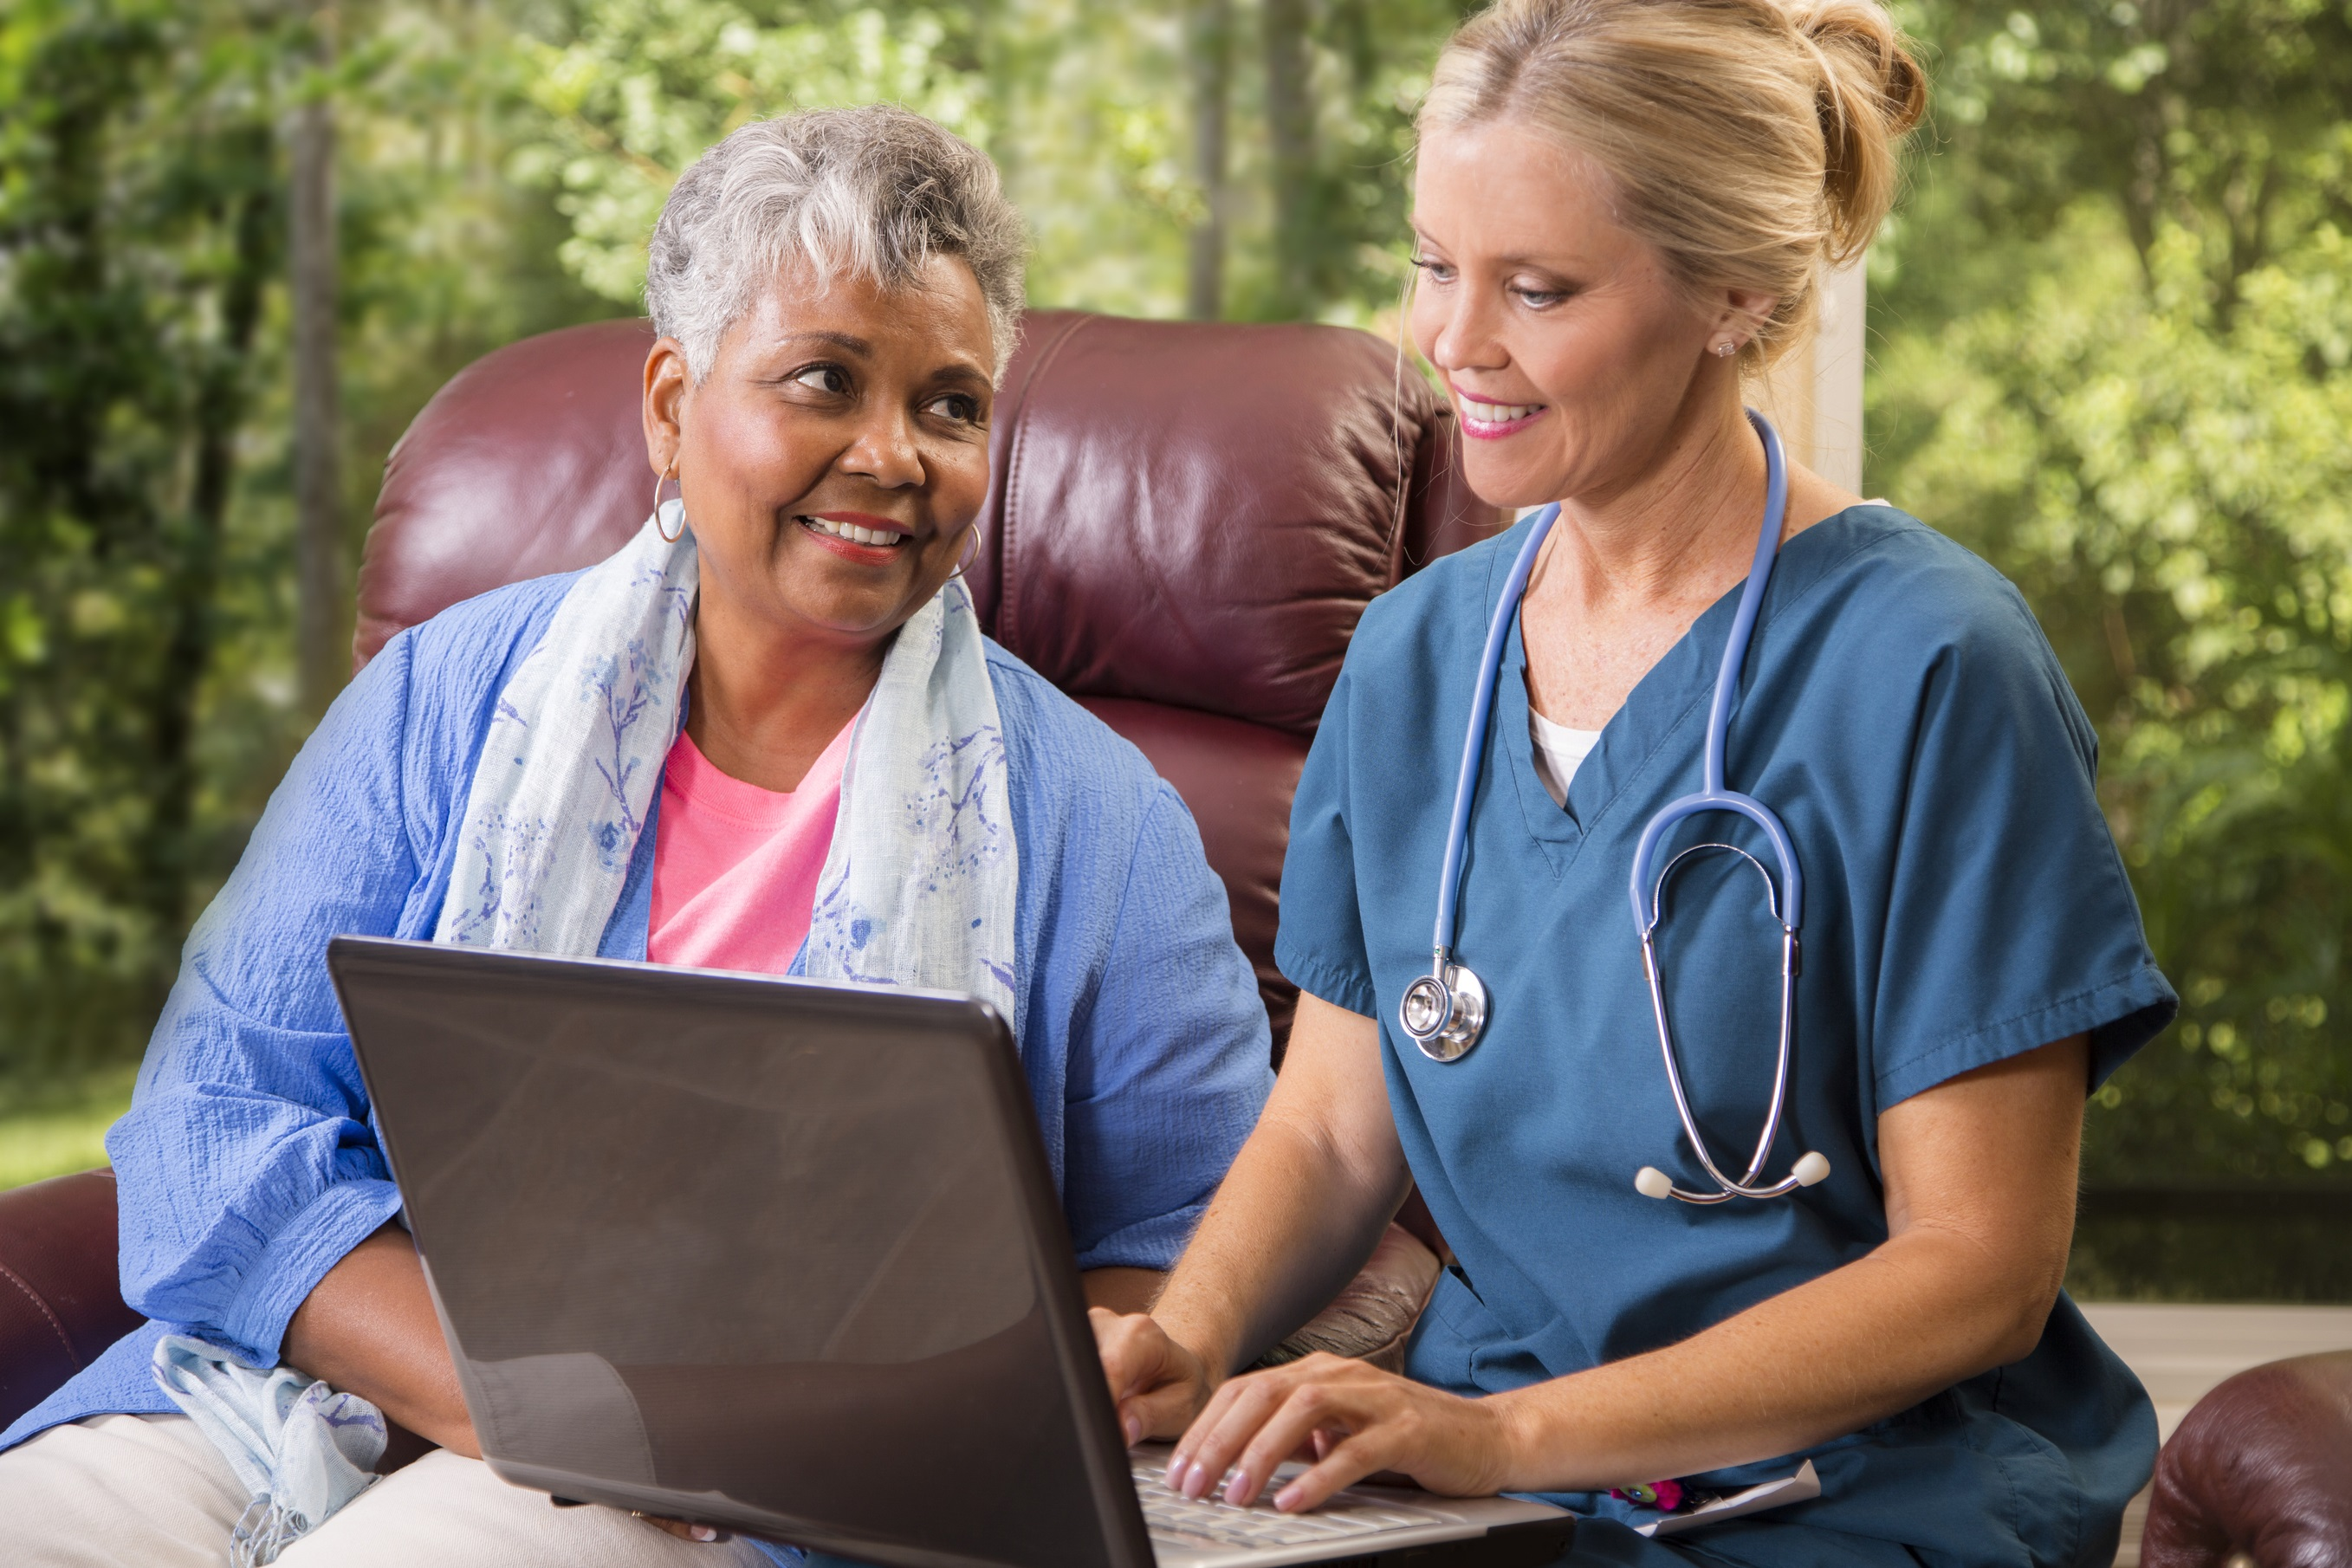 Caring home healthcare nurse conducts medical consultation with African descent senior adult woman at her home or nursing home. The female patient is sitting in her comfortable chair while reviewing her medical information on a laptop with her nurse or doctor.